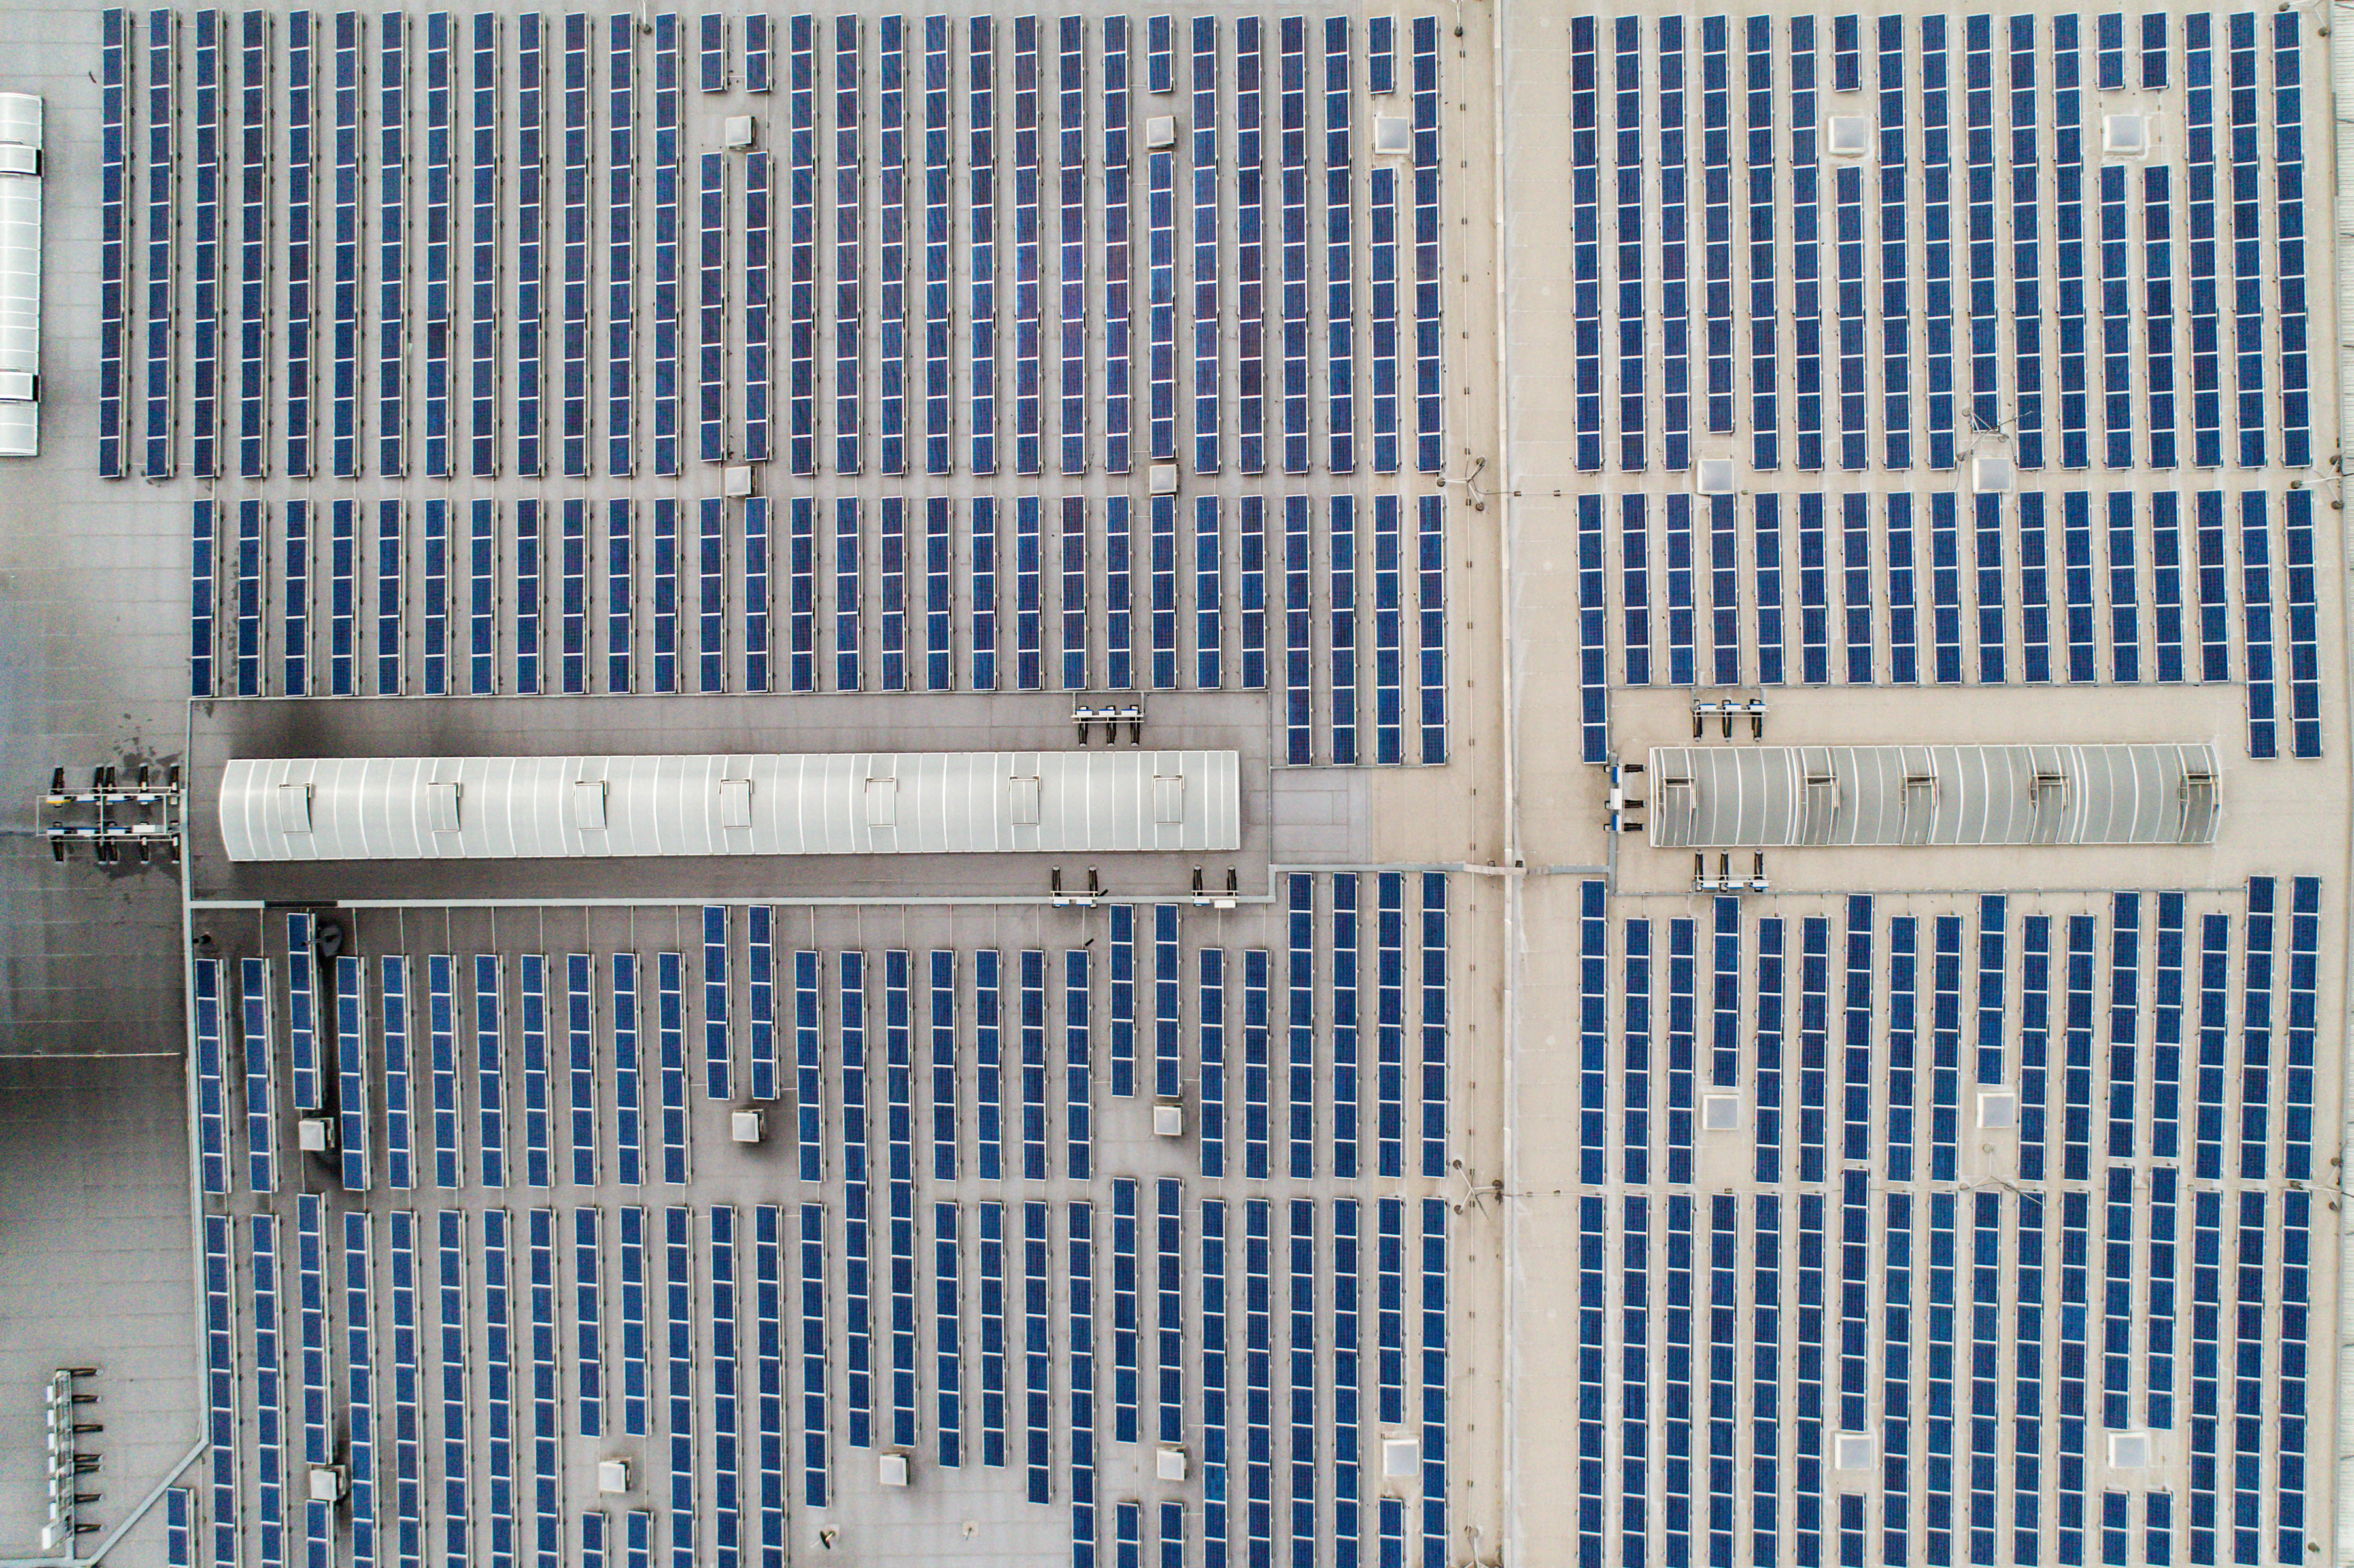 Aerial top down view on many Solar panels rows lined up on of factory roof.